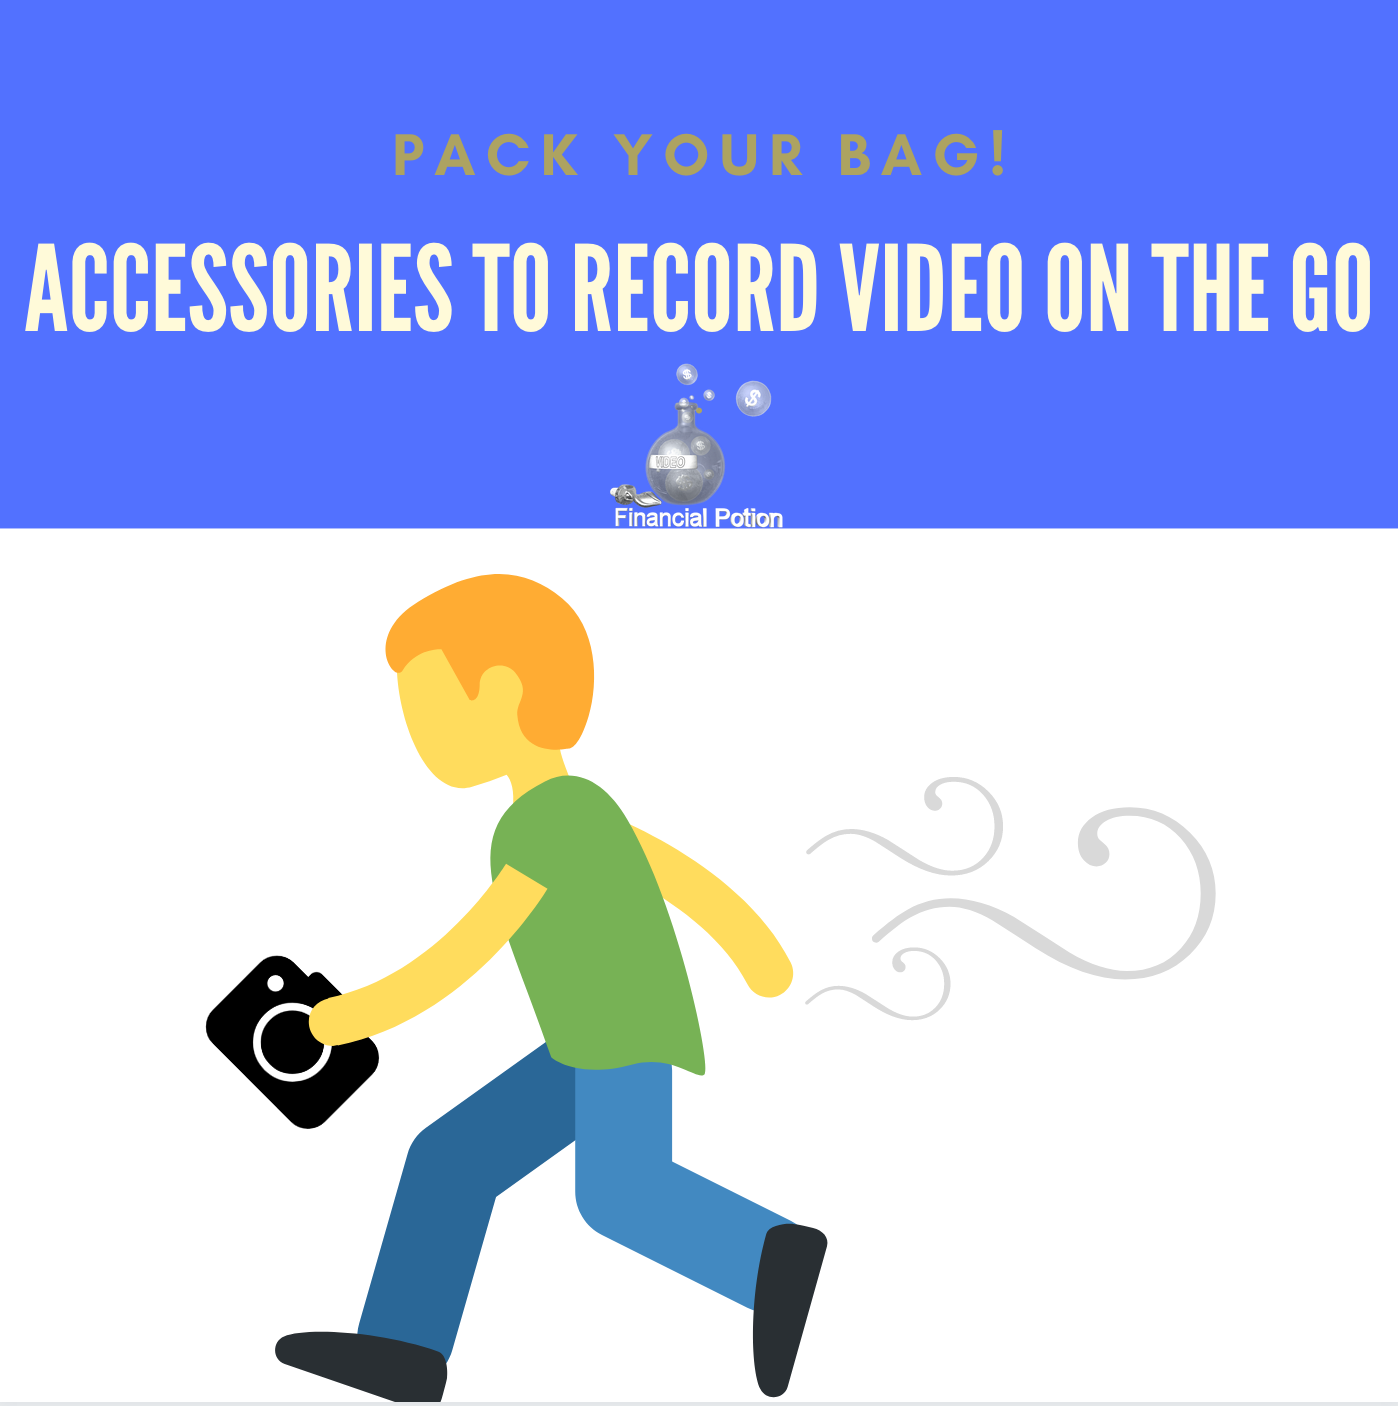 Accessories to Record Video on the Go